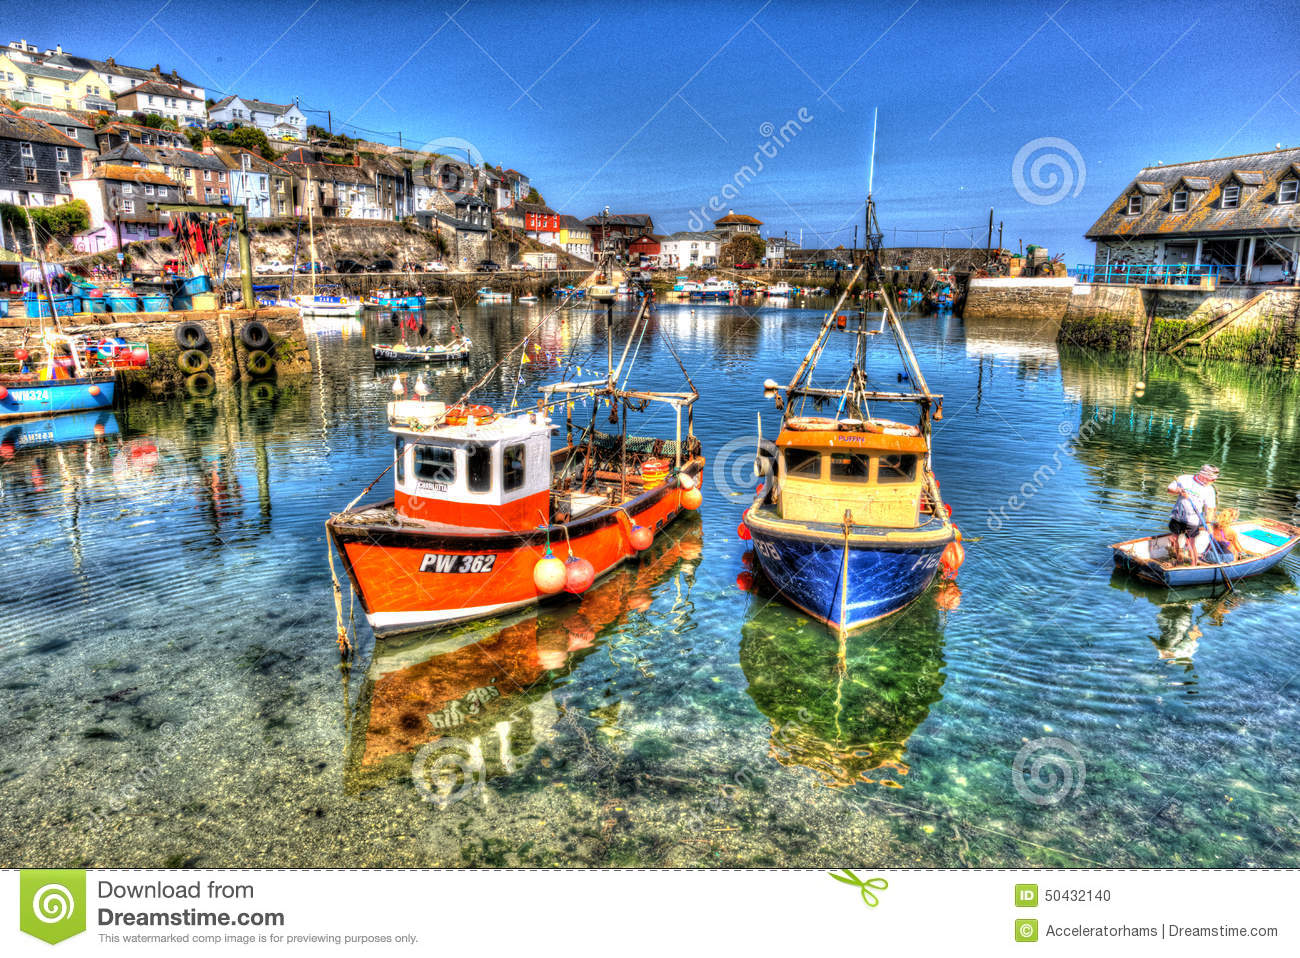 Fishing Boats Mevagissey Harbour Cornwall Uk Clear Blue Sea And Sky In Summer Day In Vibrant And ...